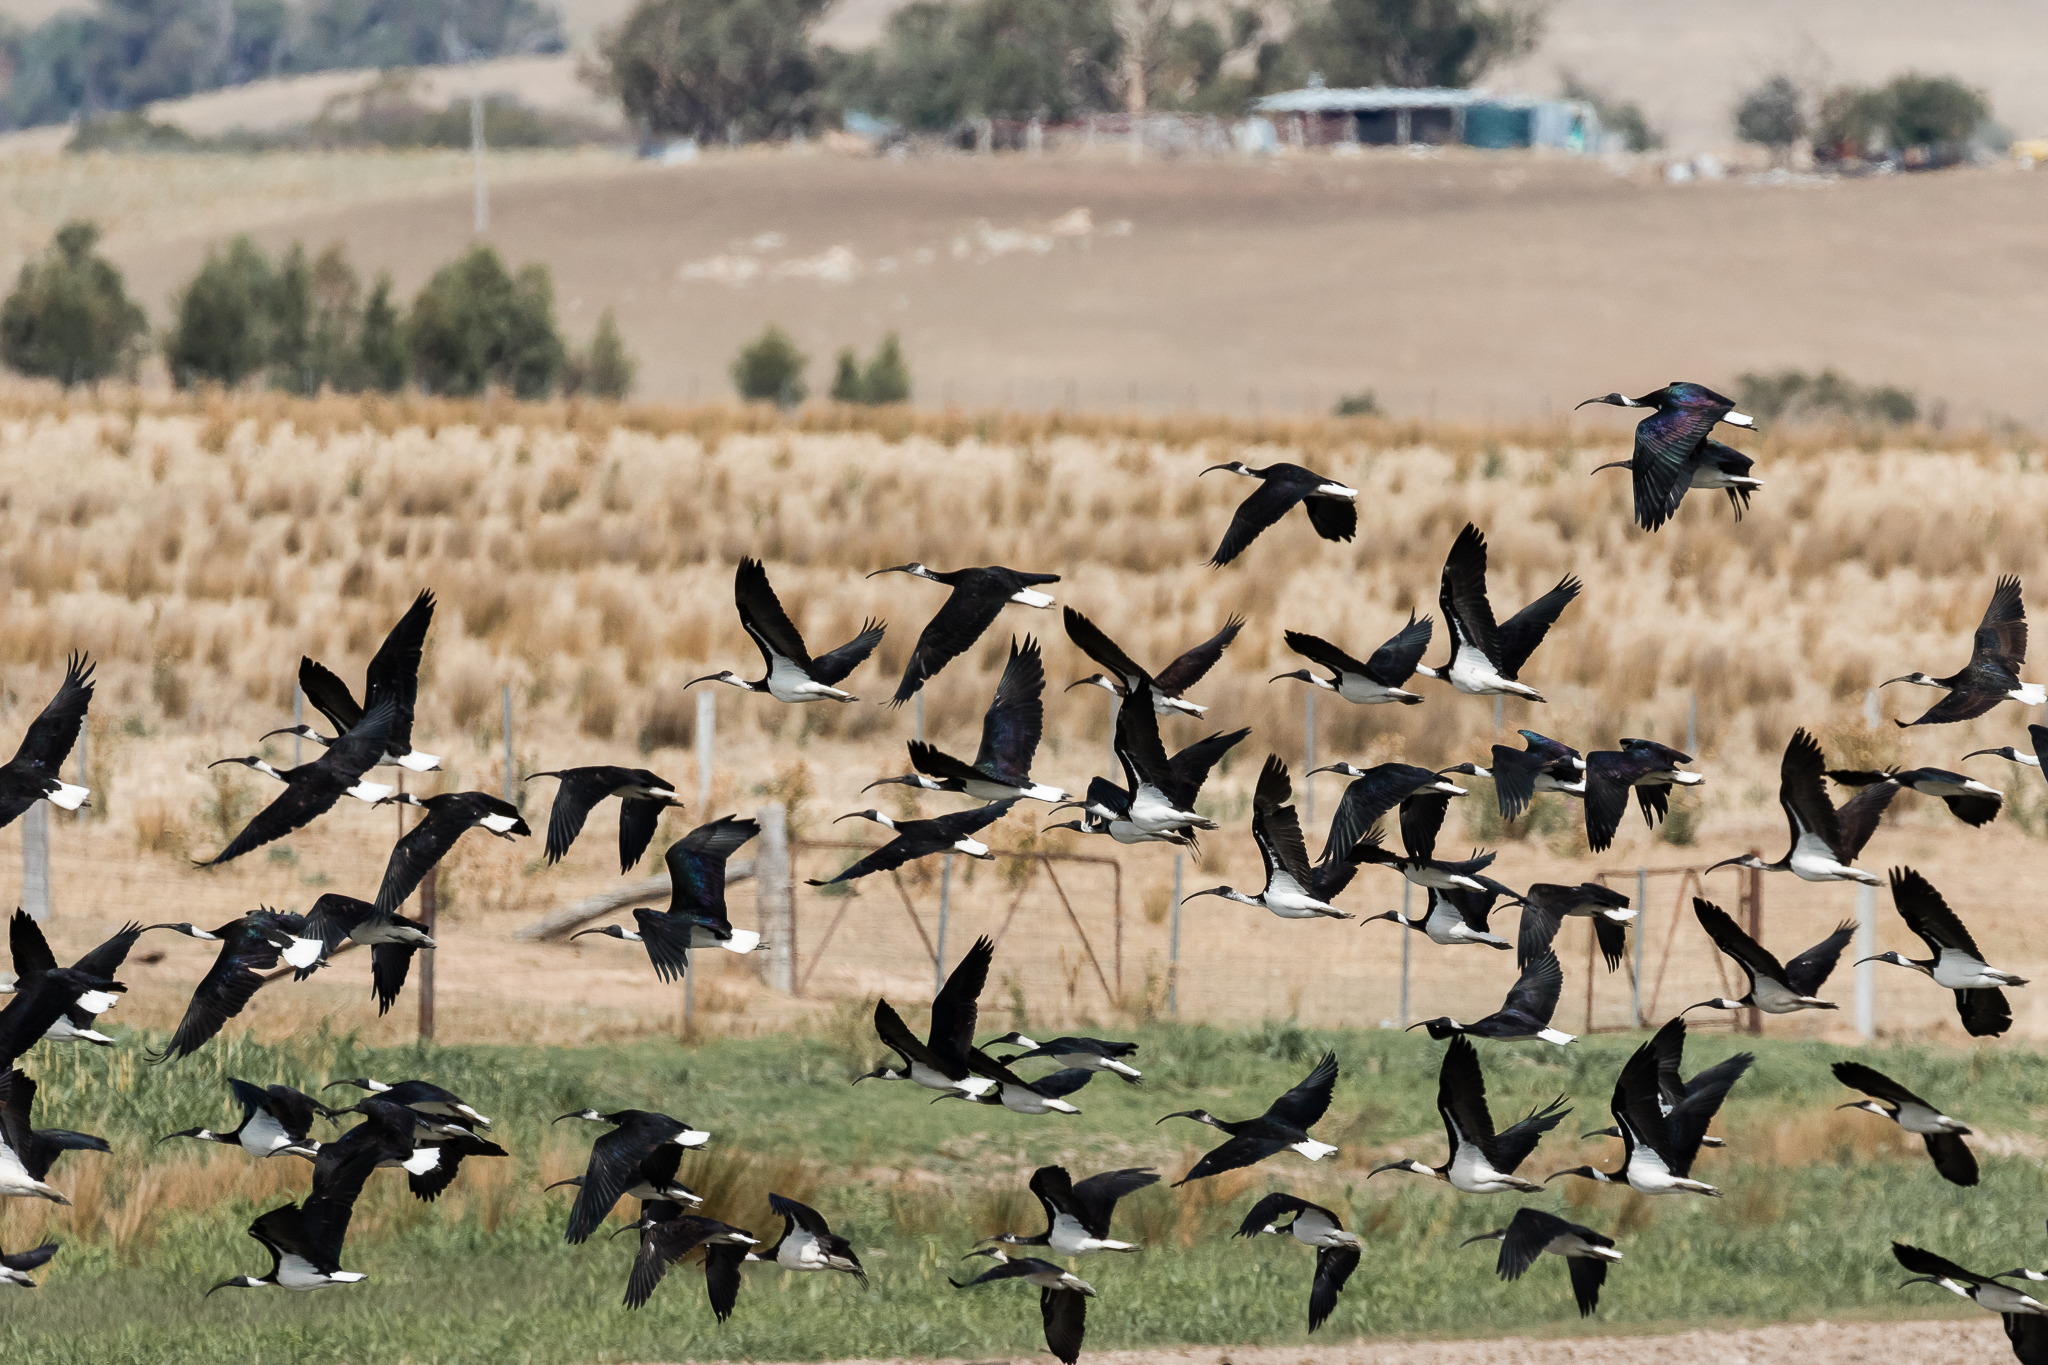 Straw-necked Ibis are grassland birds, feeding in large flocks on insects such as grasshoppers. They are seen across most Australian farming regions and fly long distances in response to seasonal conditions. Unlike their city cousin the Australian White Ibis they rarely scavenge for food.